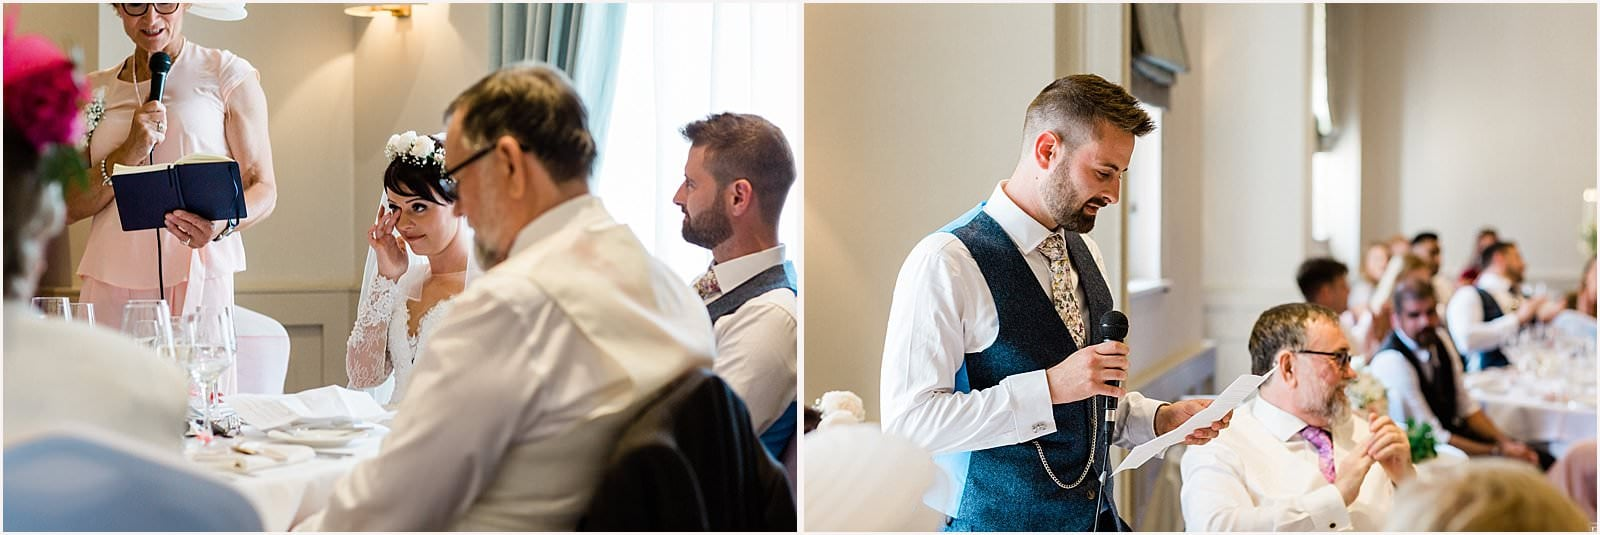 Wotton House Wedding - Justine + Rob's stunning wedding 38